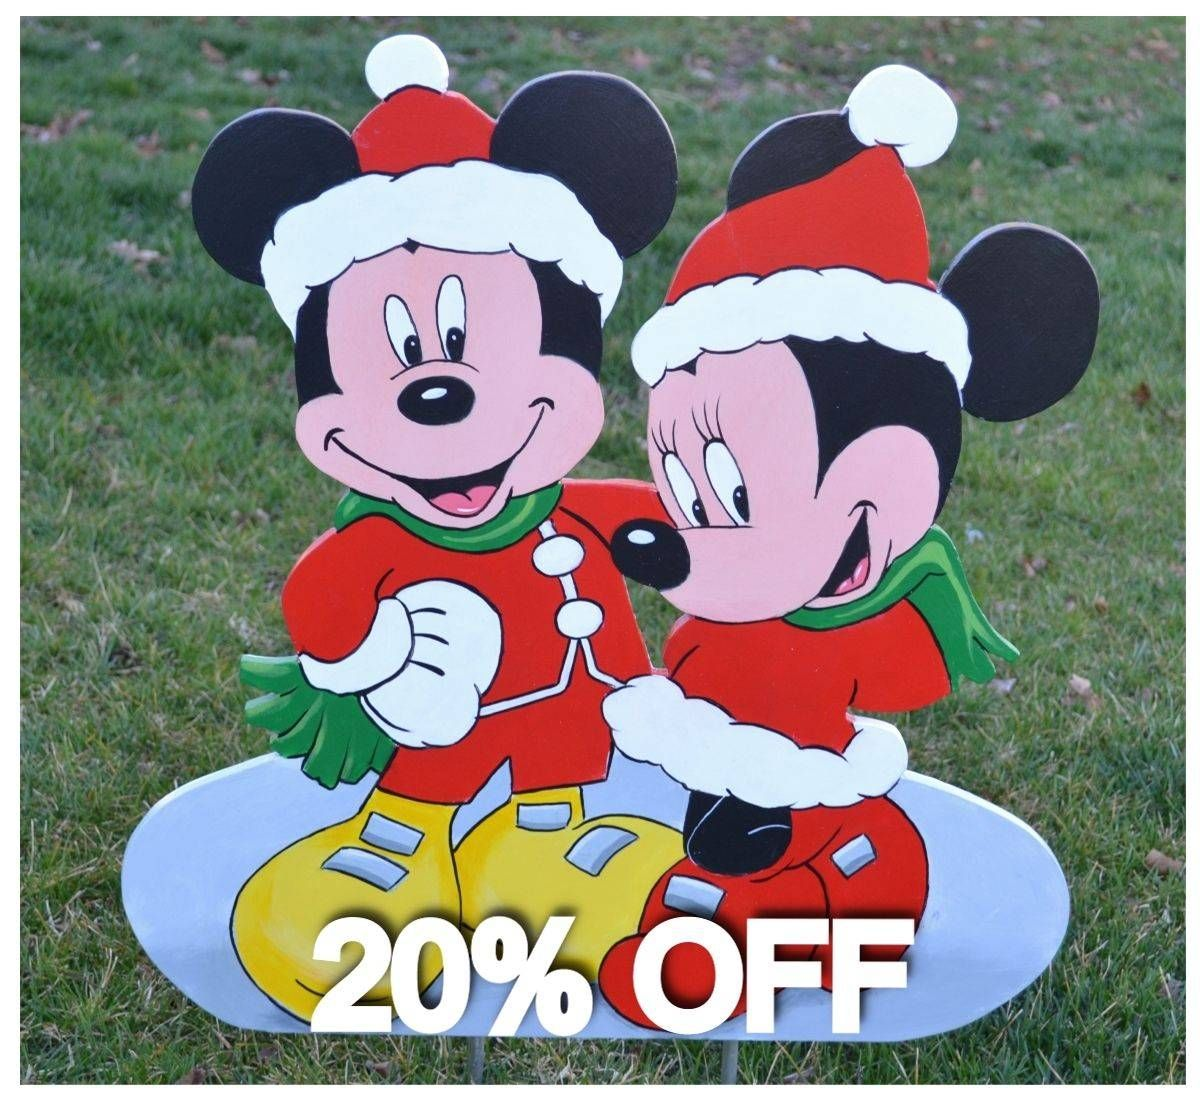 cool mickey mouse minnie mouse at christmas garden stake yard stake decorations check jpg 1200x1100 cool - Mickey Mouse Outdoor Christmas Decorations